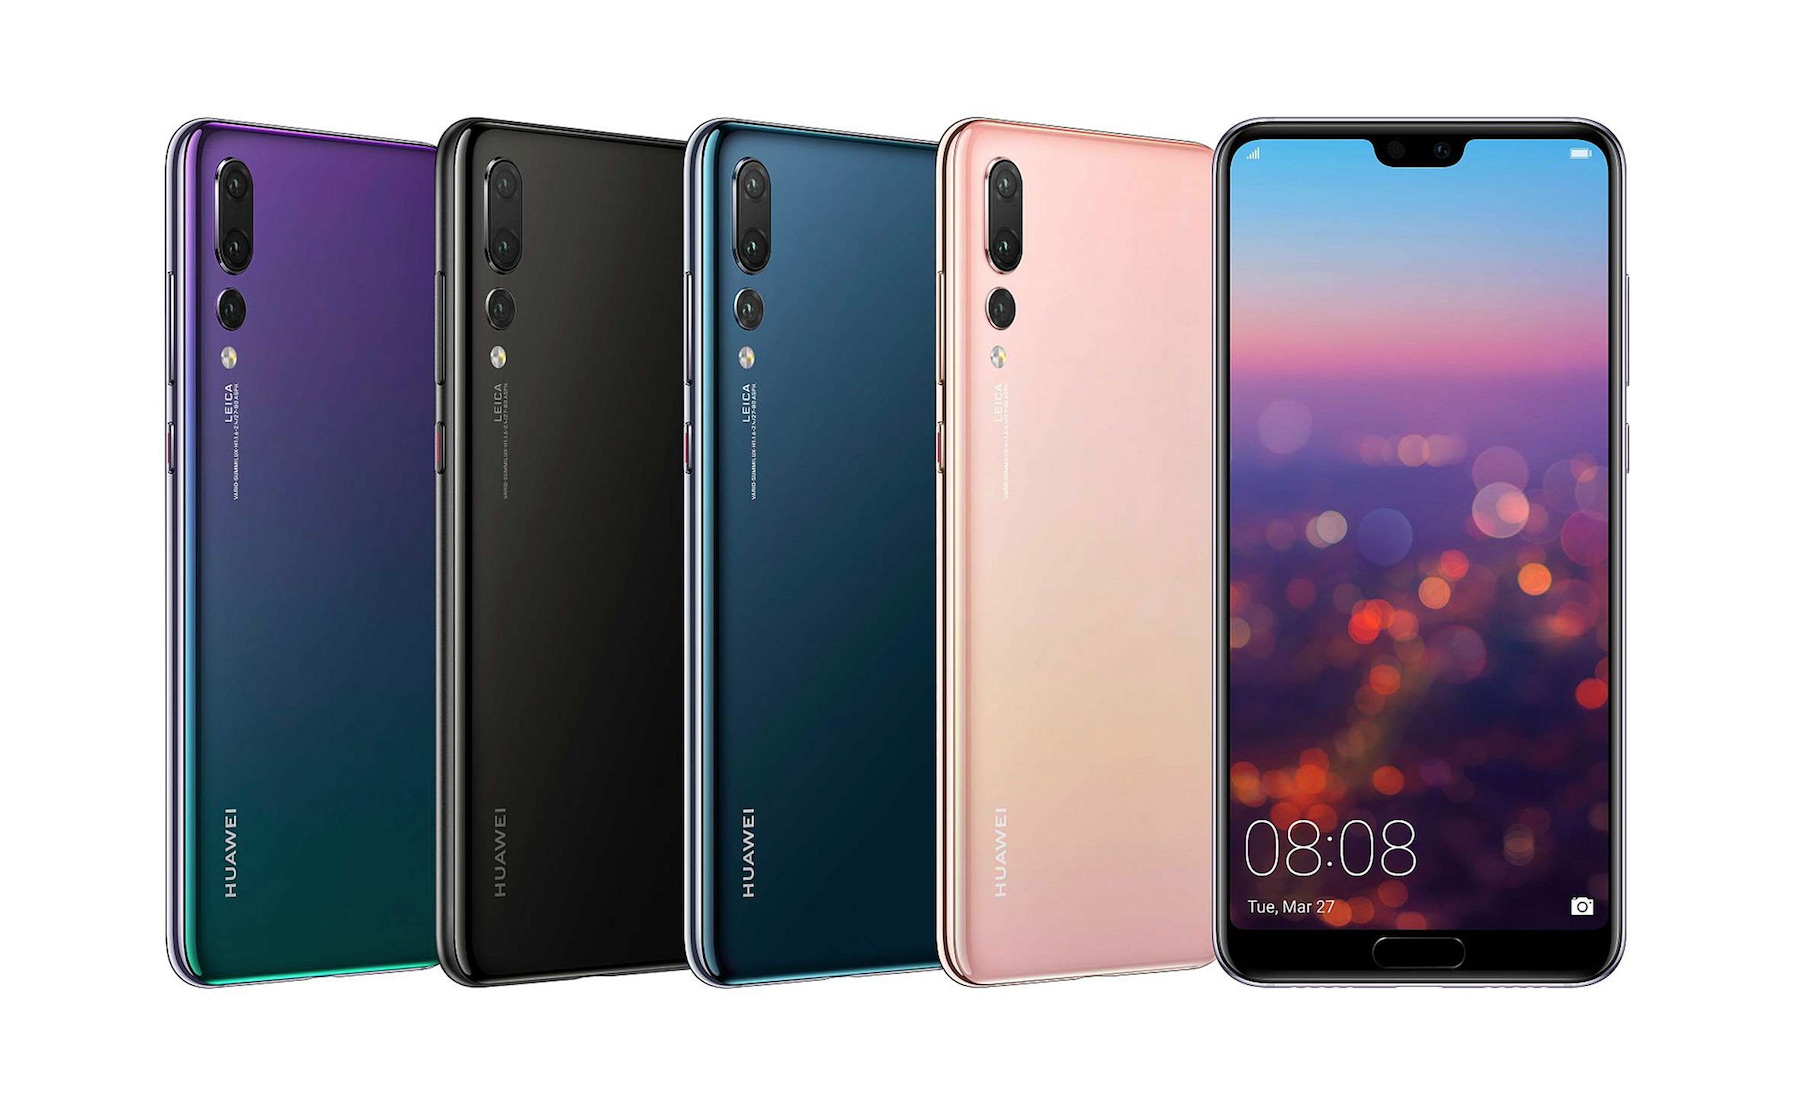 HUAWEI-P20-Group-Shot-Feature